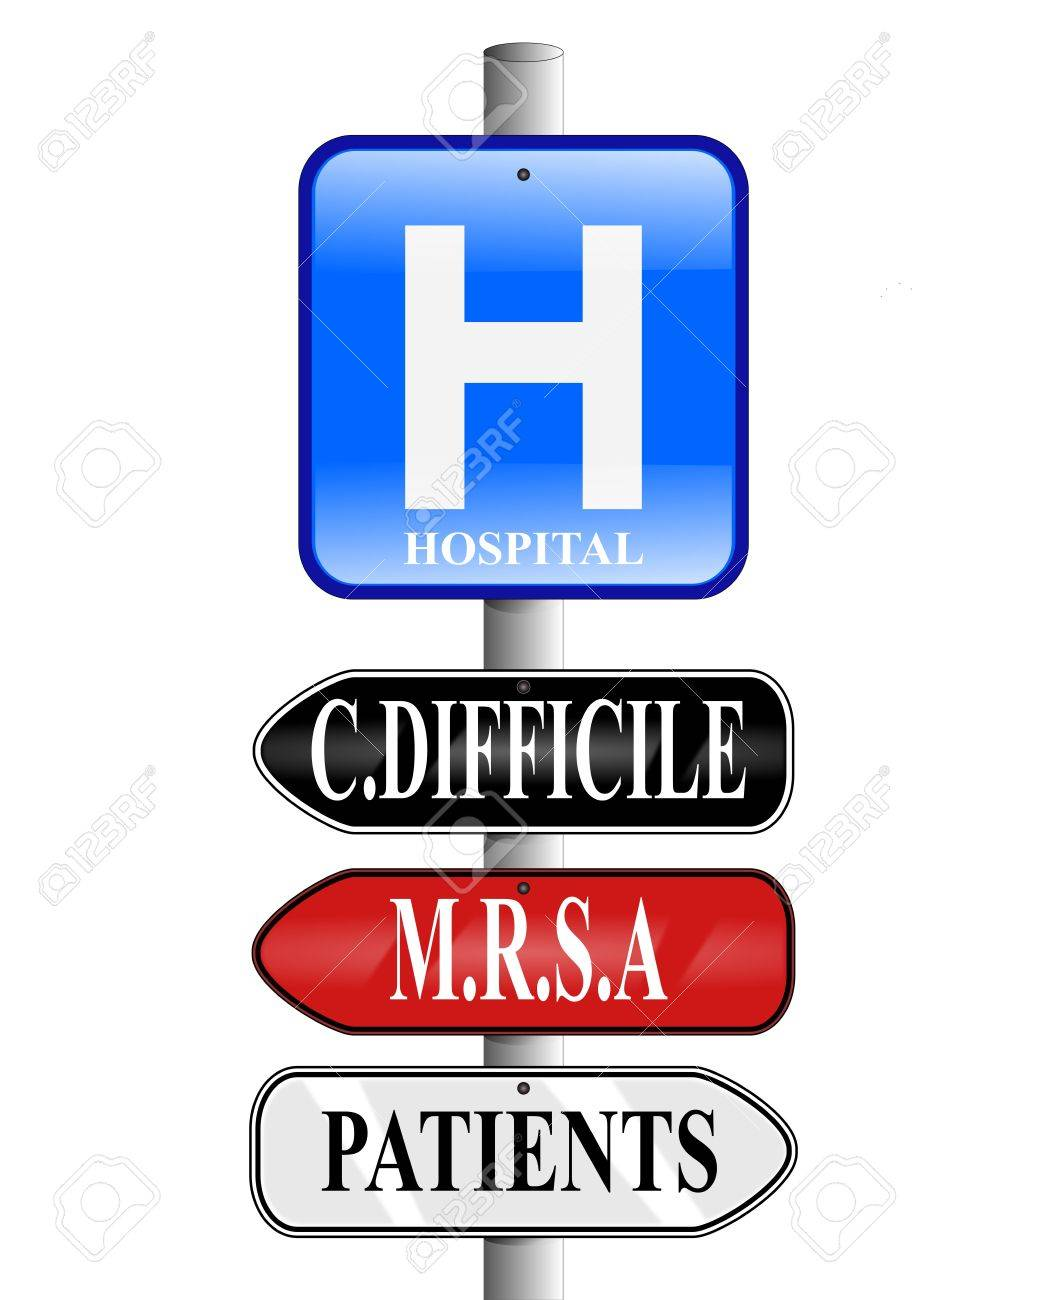 Illustration of a hospital sign nailed to a pole above two arrow signs stating known hospital infections of Clostridium difficile and MRSA with a lower third sign pointing patients in the opposite direction. Isolated on a white background. Stock Illustration - 6317833